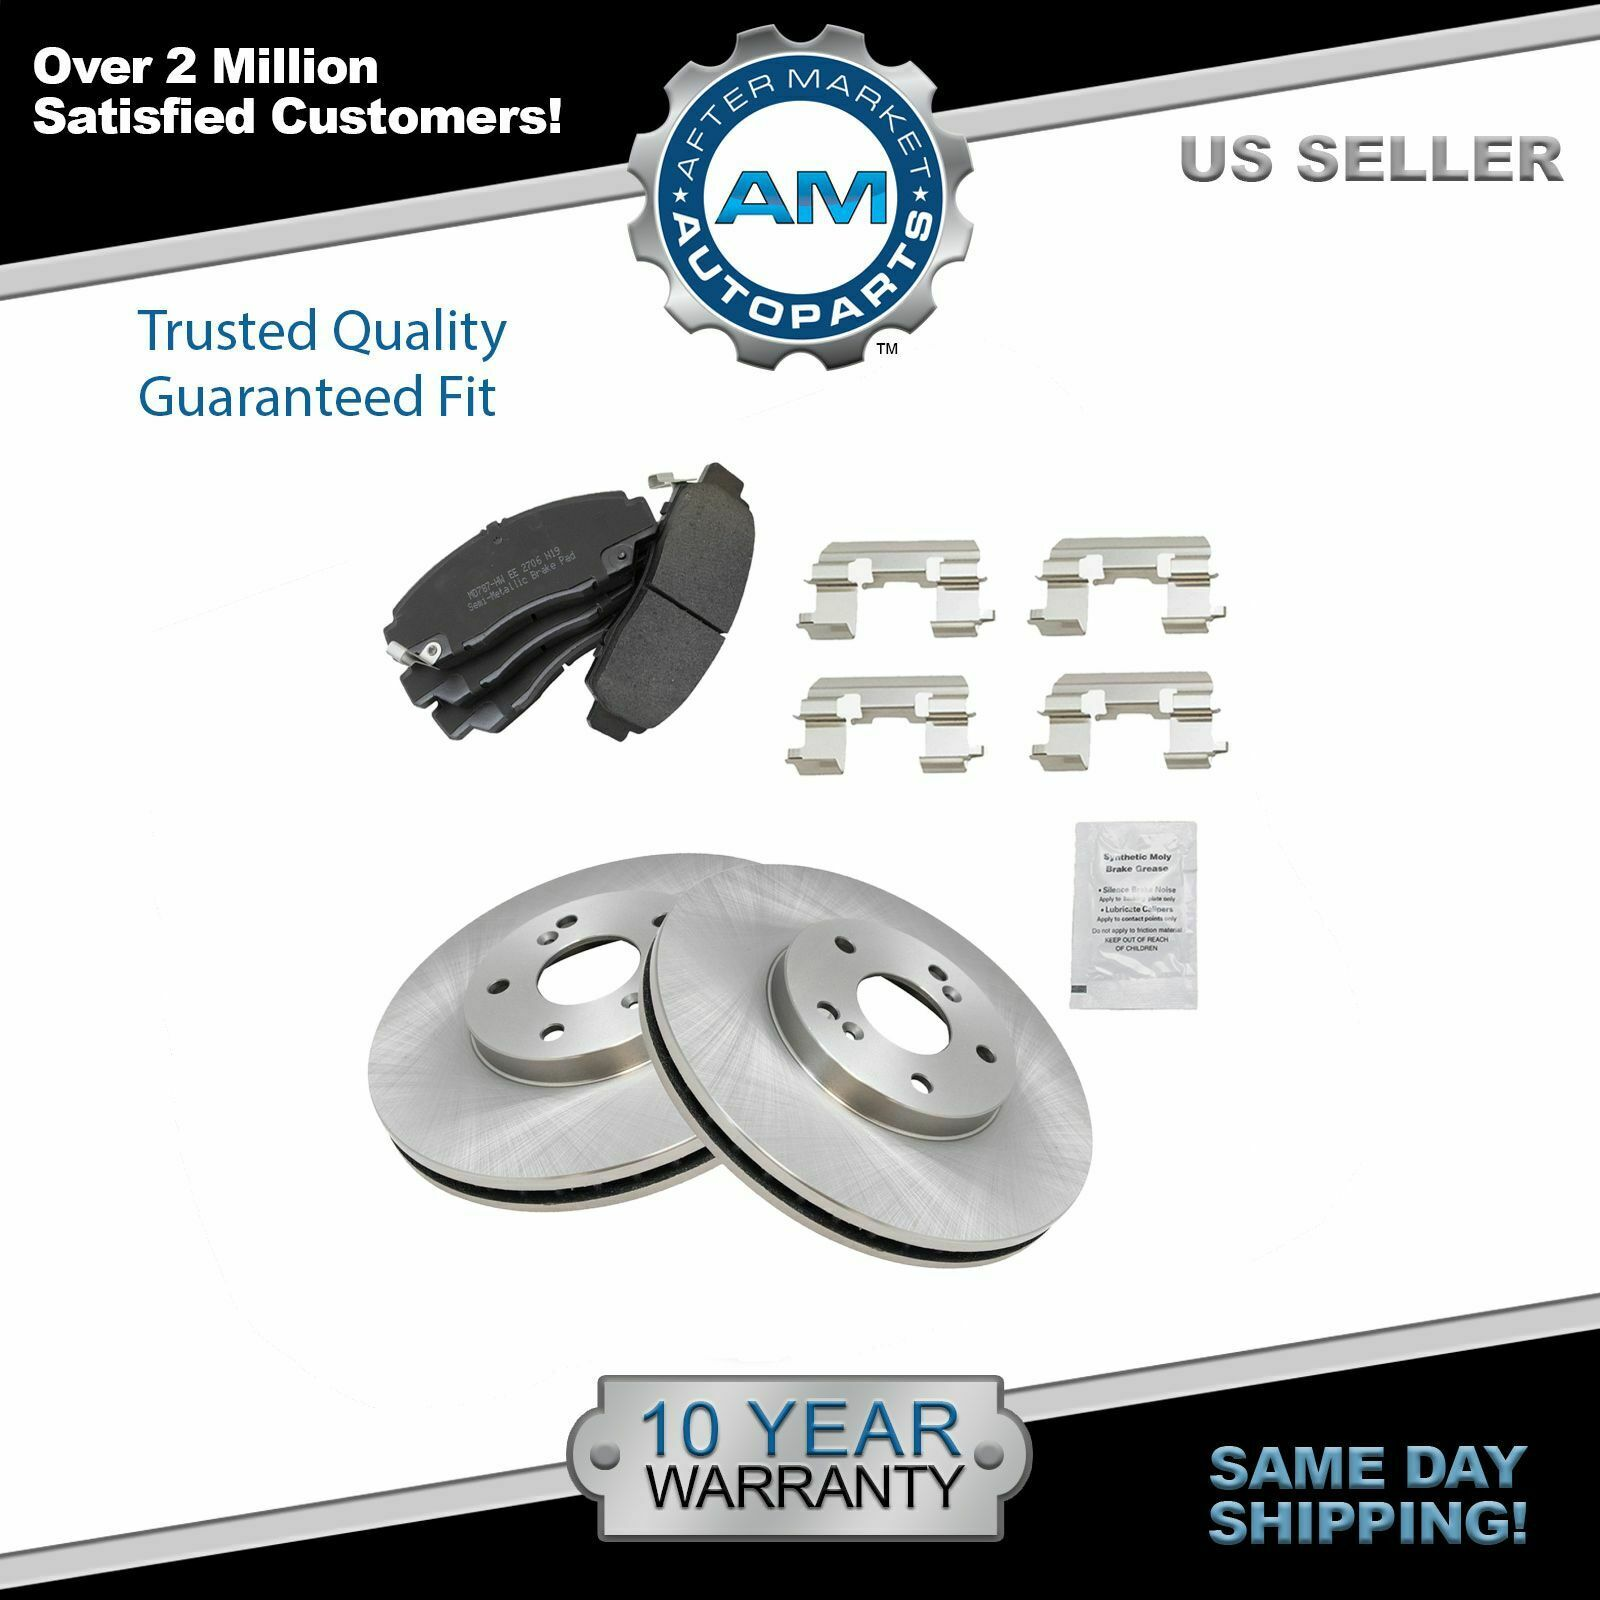 Nakamoto Front Metallic Brake Pad & Rotor Kit for Honda Accord Acura CL 3.2 TL 1 of 6Only 5 available ...